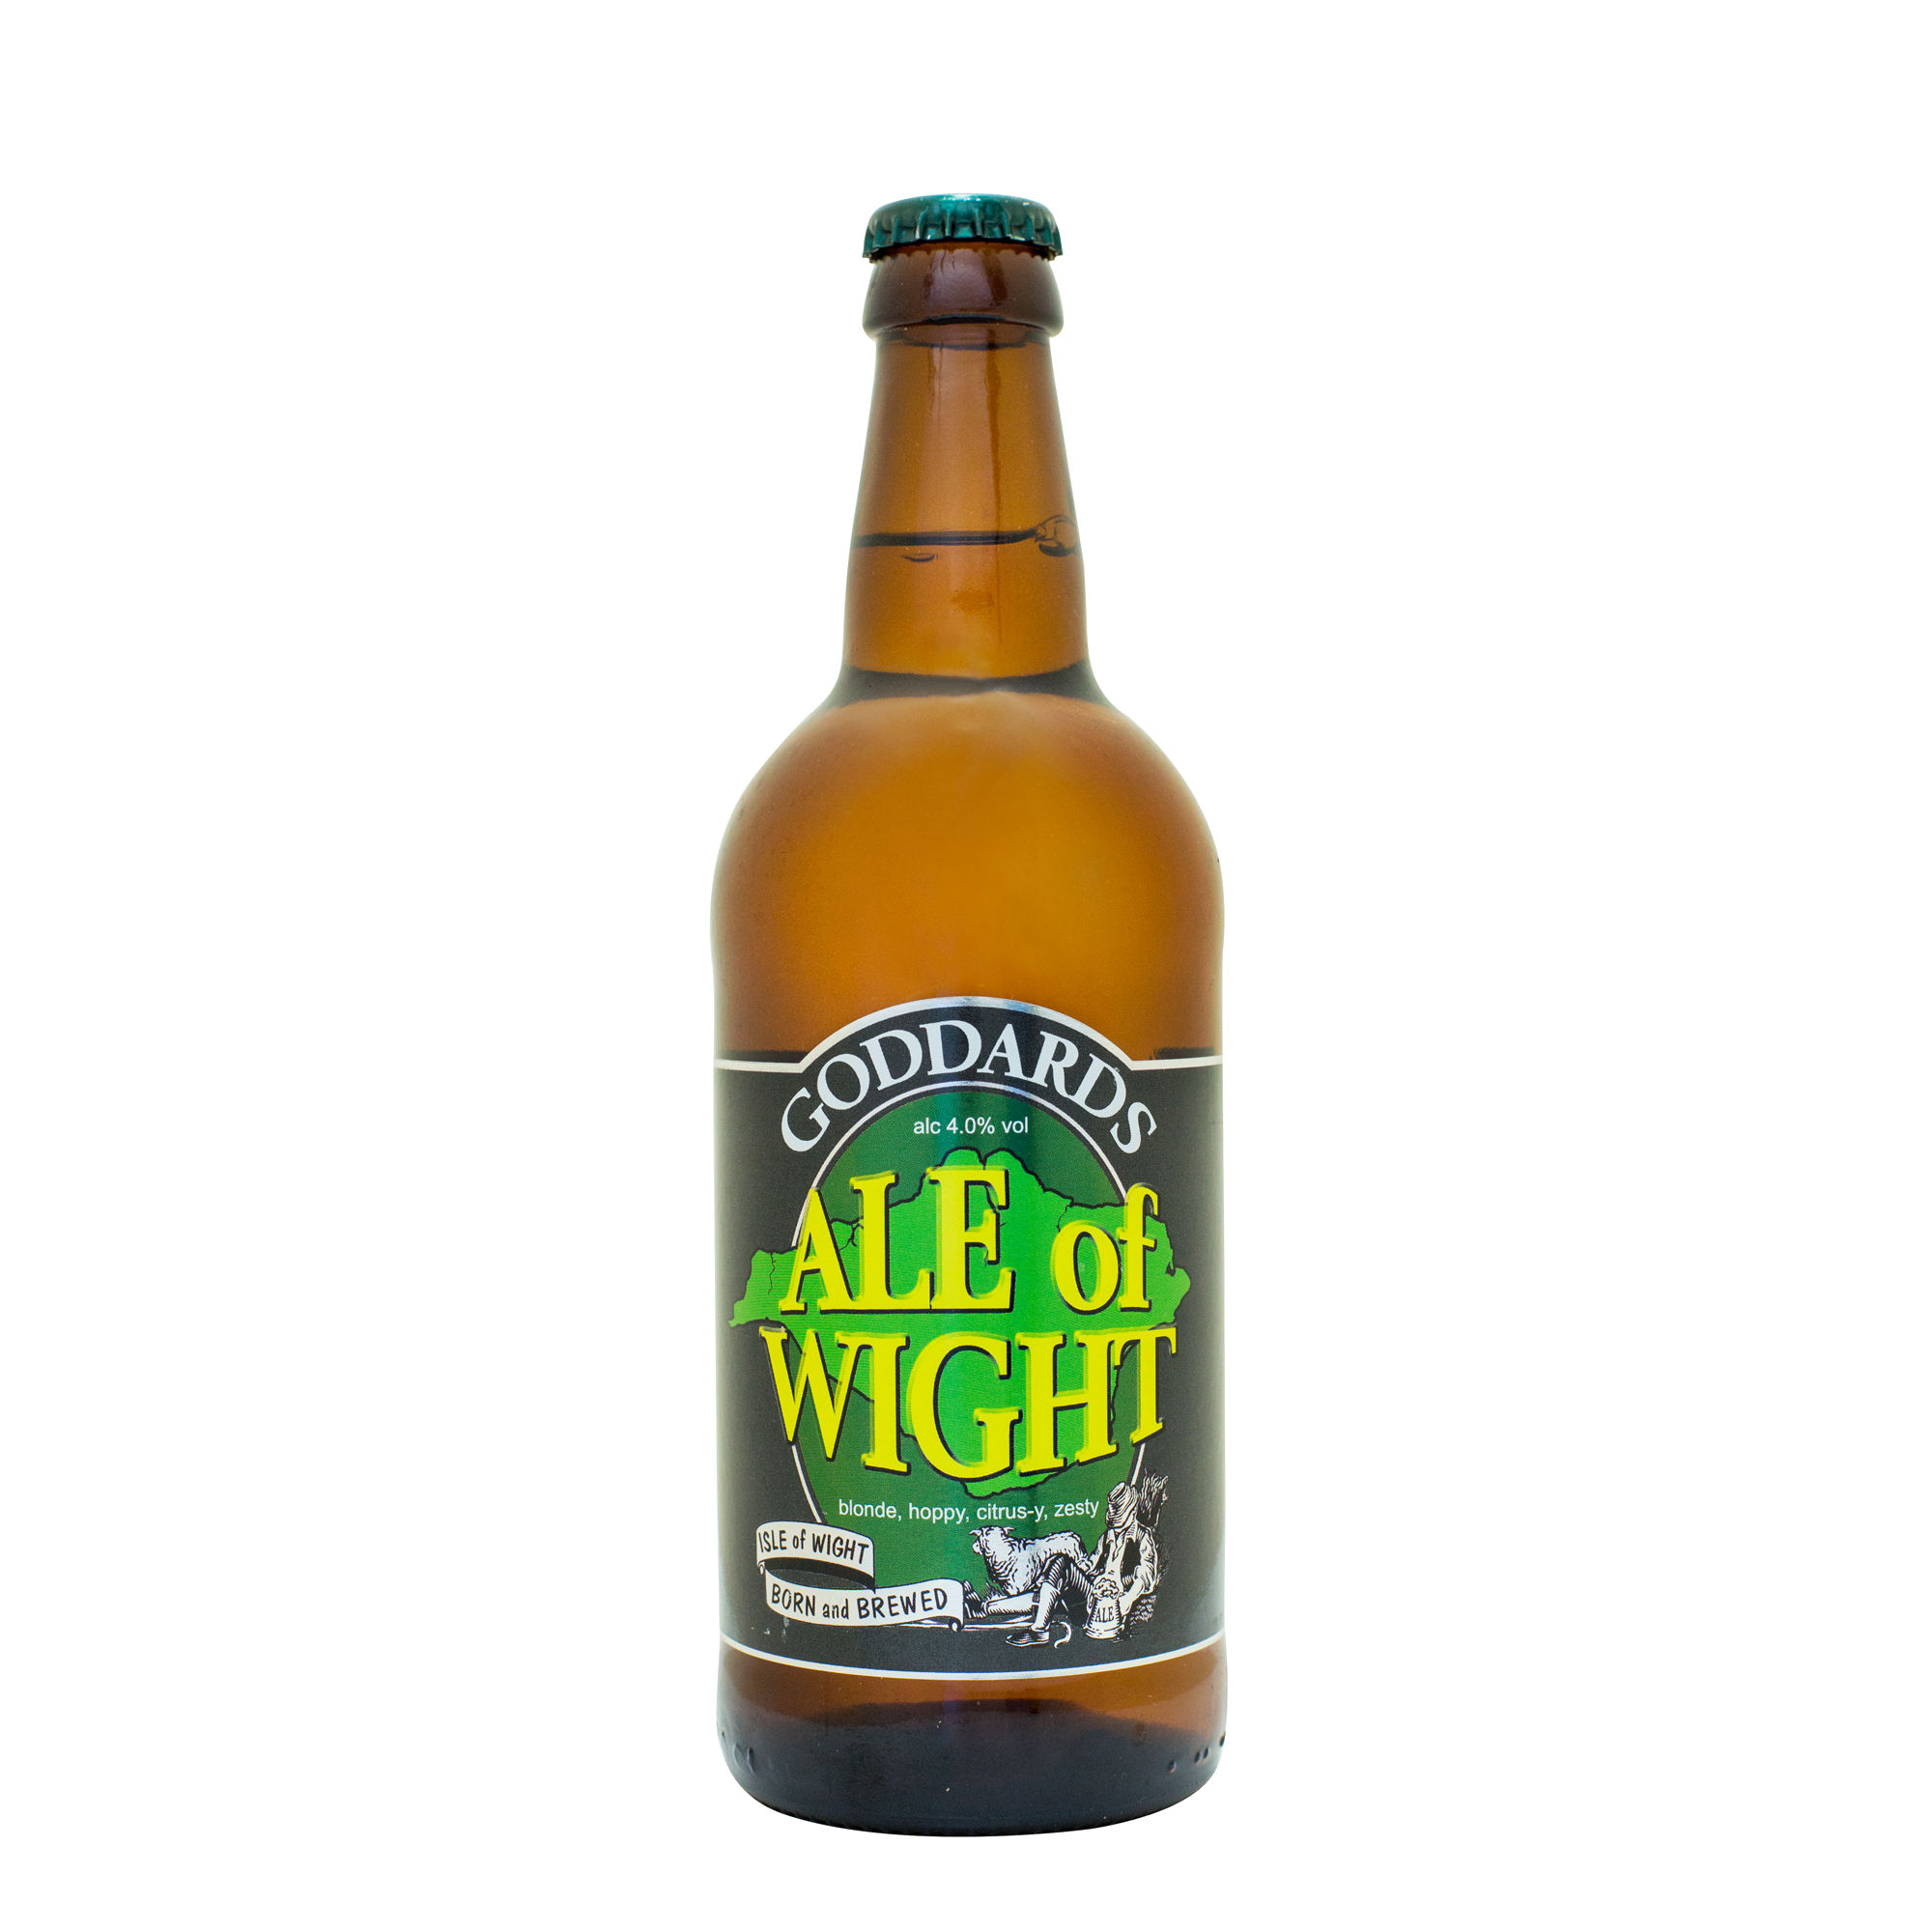 Goddards Brewery - Ale of Wight